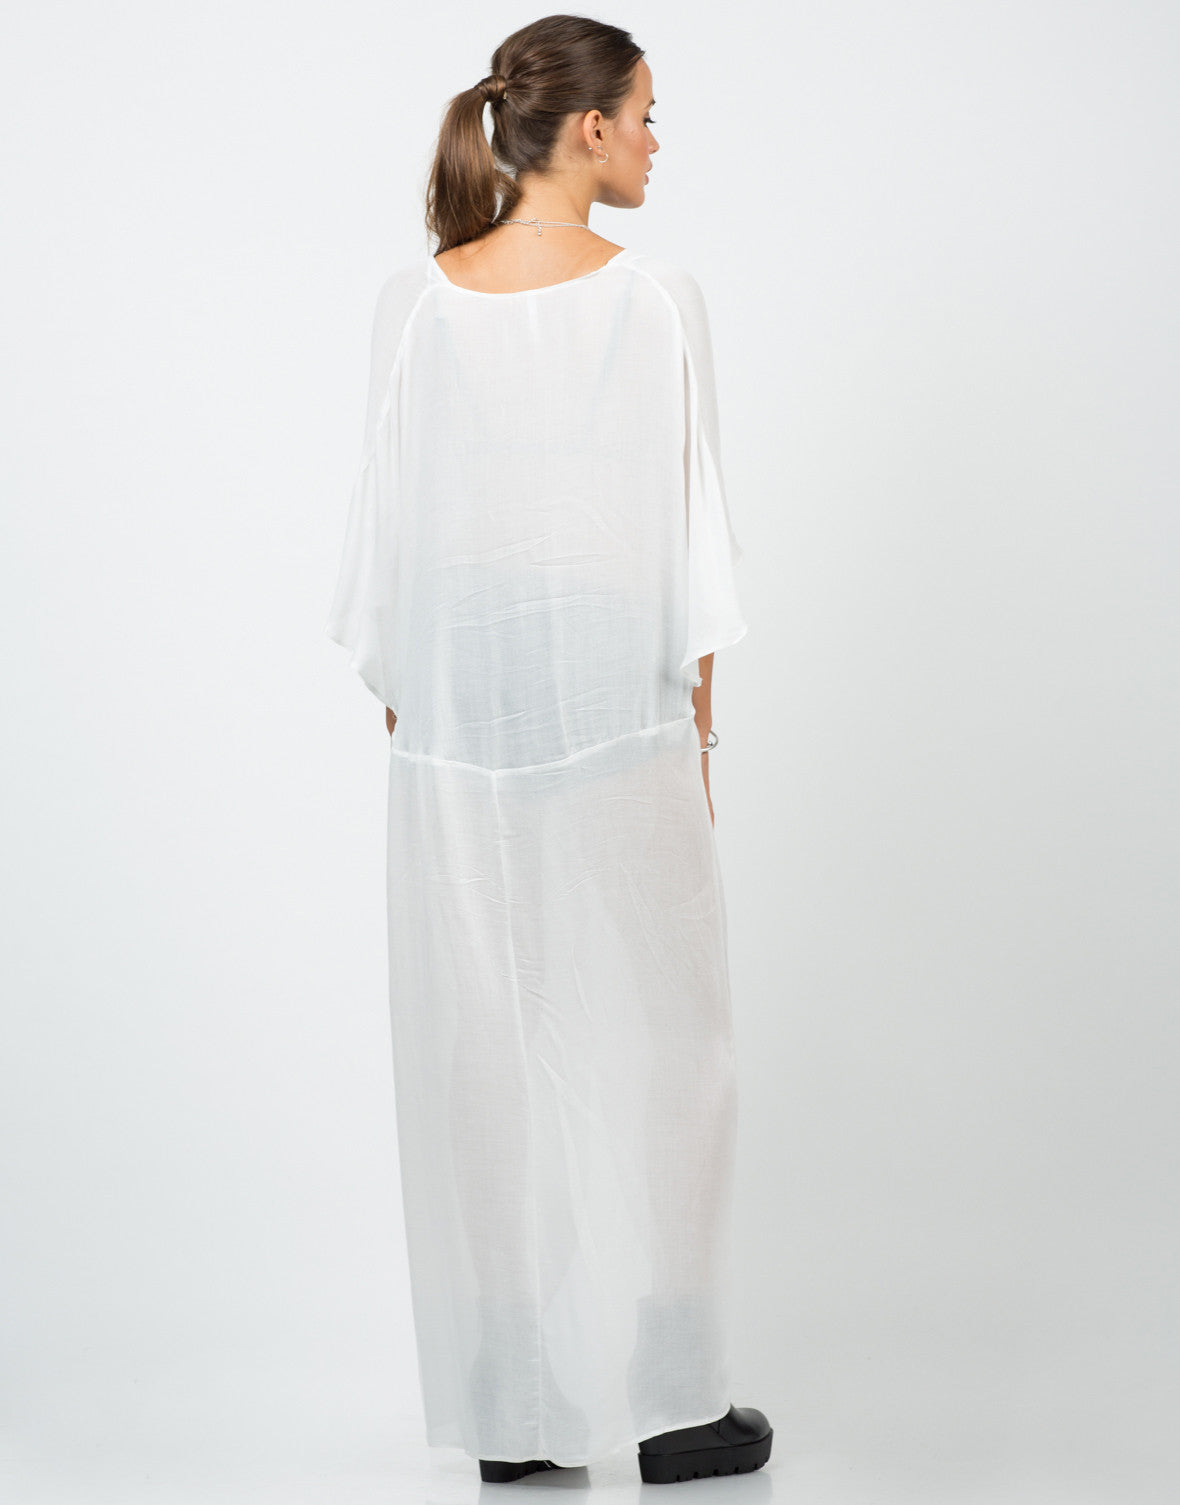 Back View of Sheer Knotted Shirt Dress